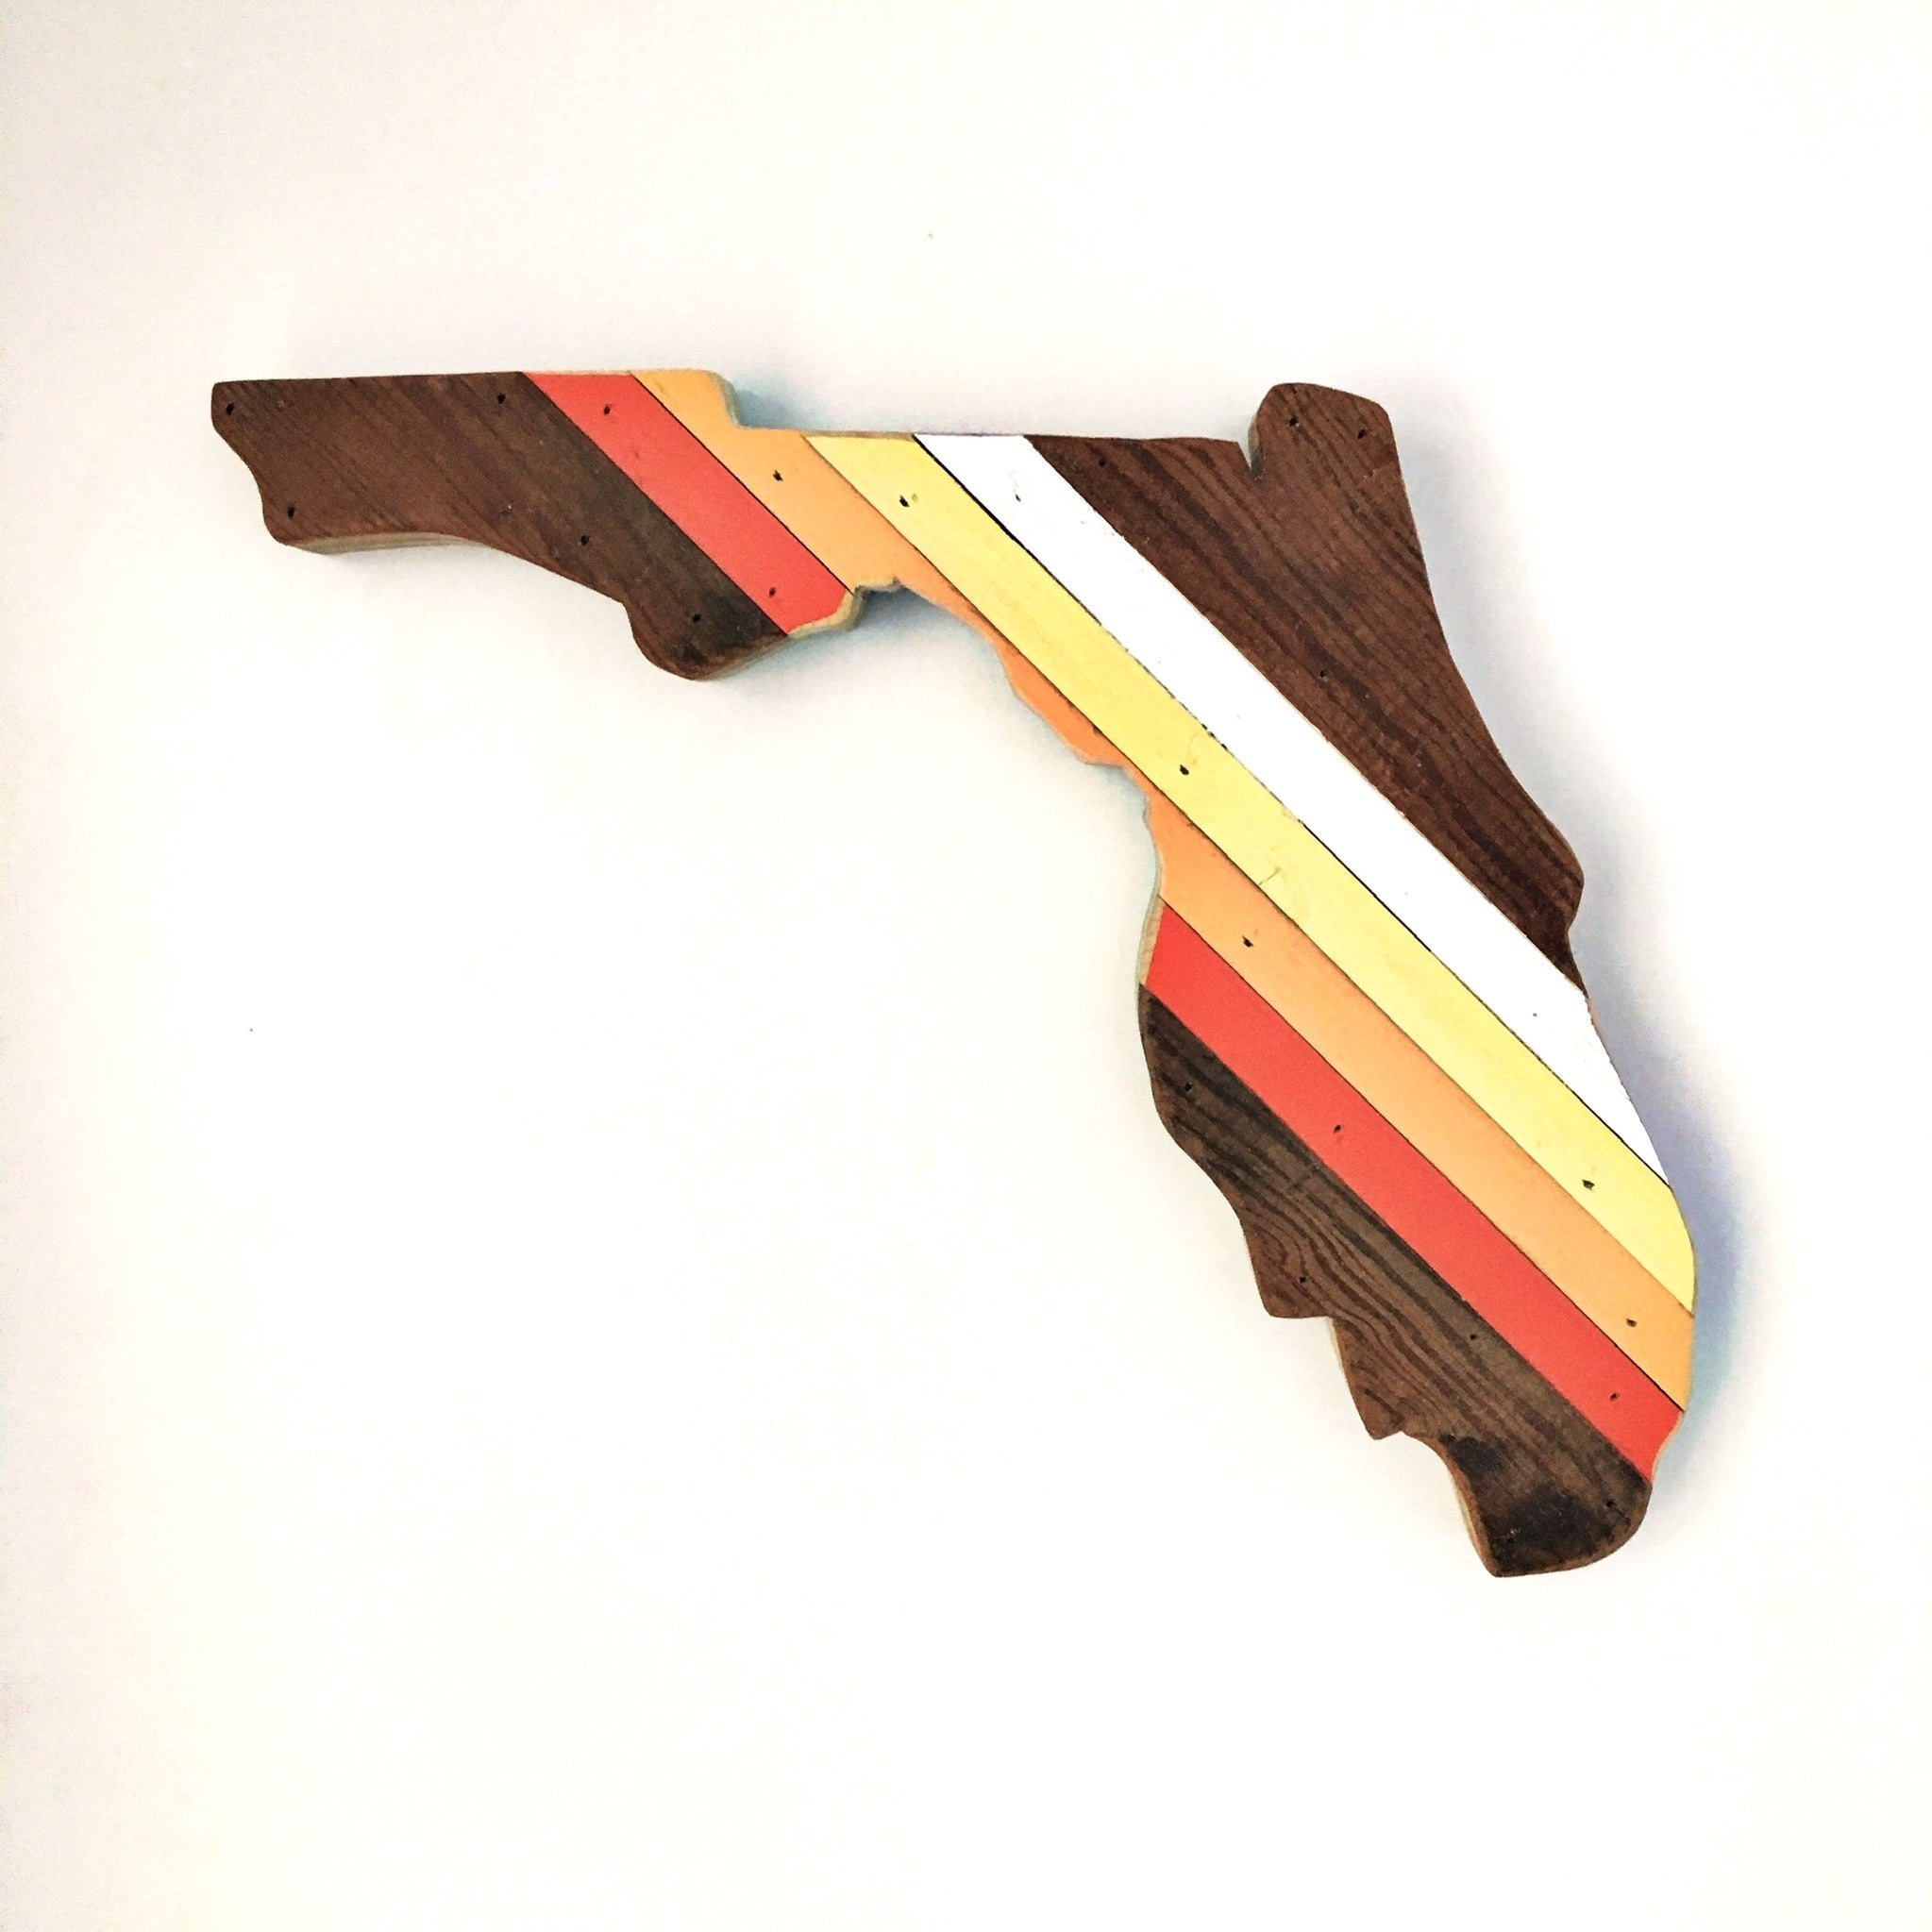 "76 PLAINS FLORIDA  - 15"" (One-of-a-Kind)"